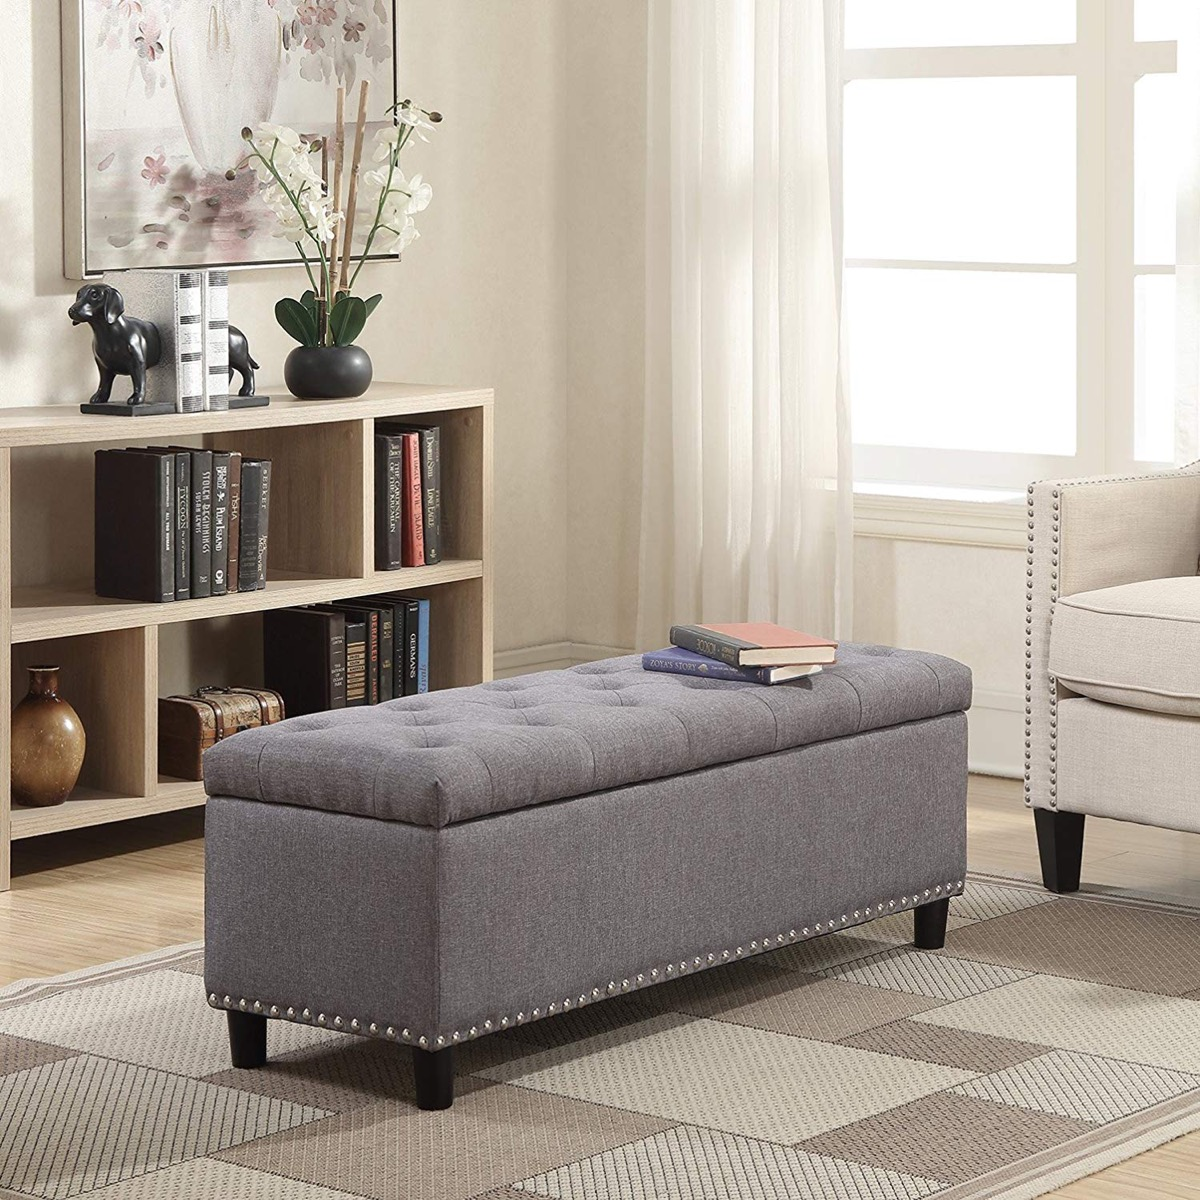 Multifunctional storage benches for all rooms